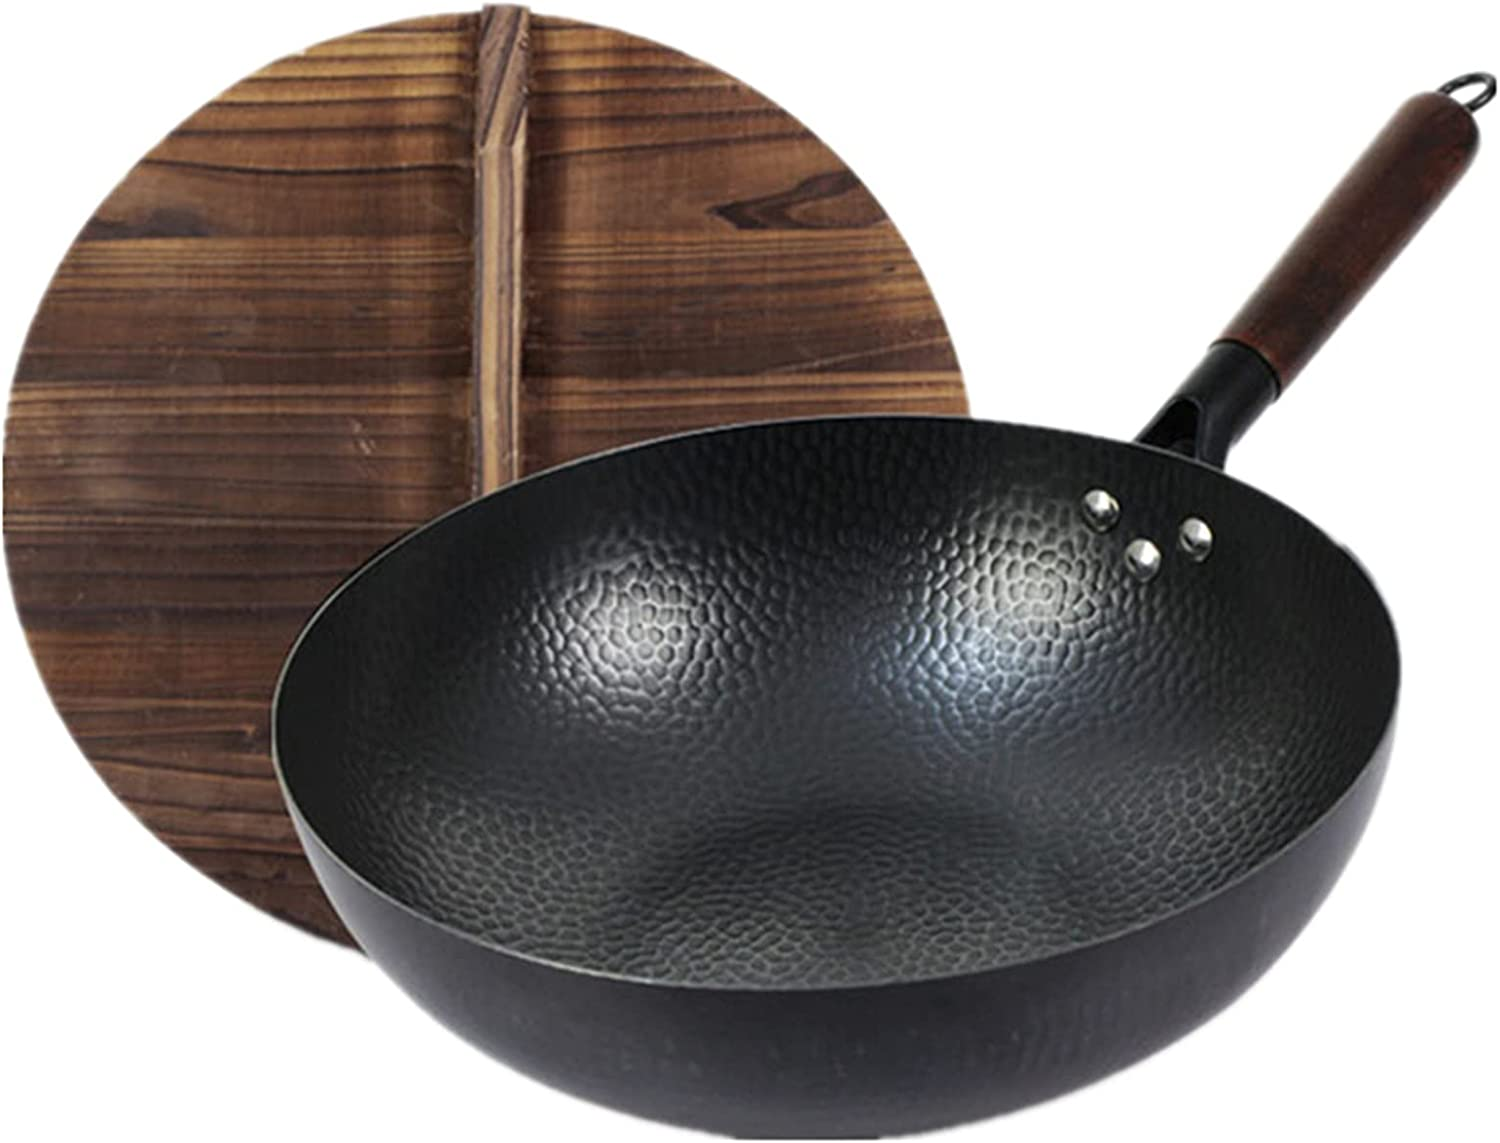 unisex Wok Pan with Wooden Mail order Lid Handle and Spatul Steel Carbon